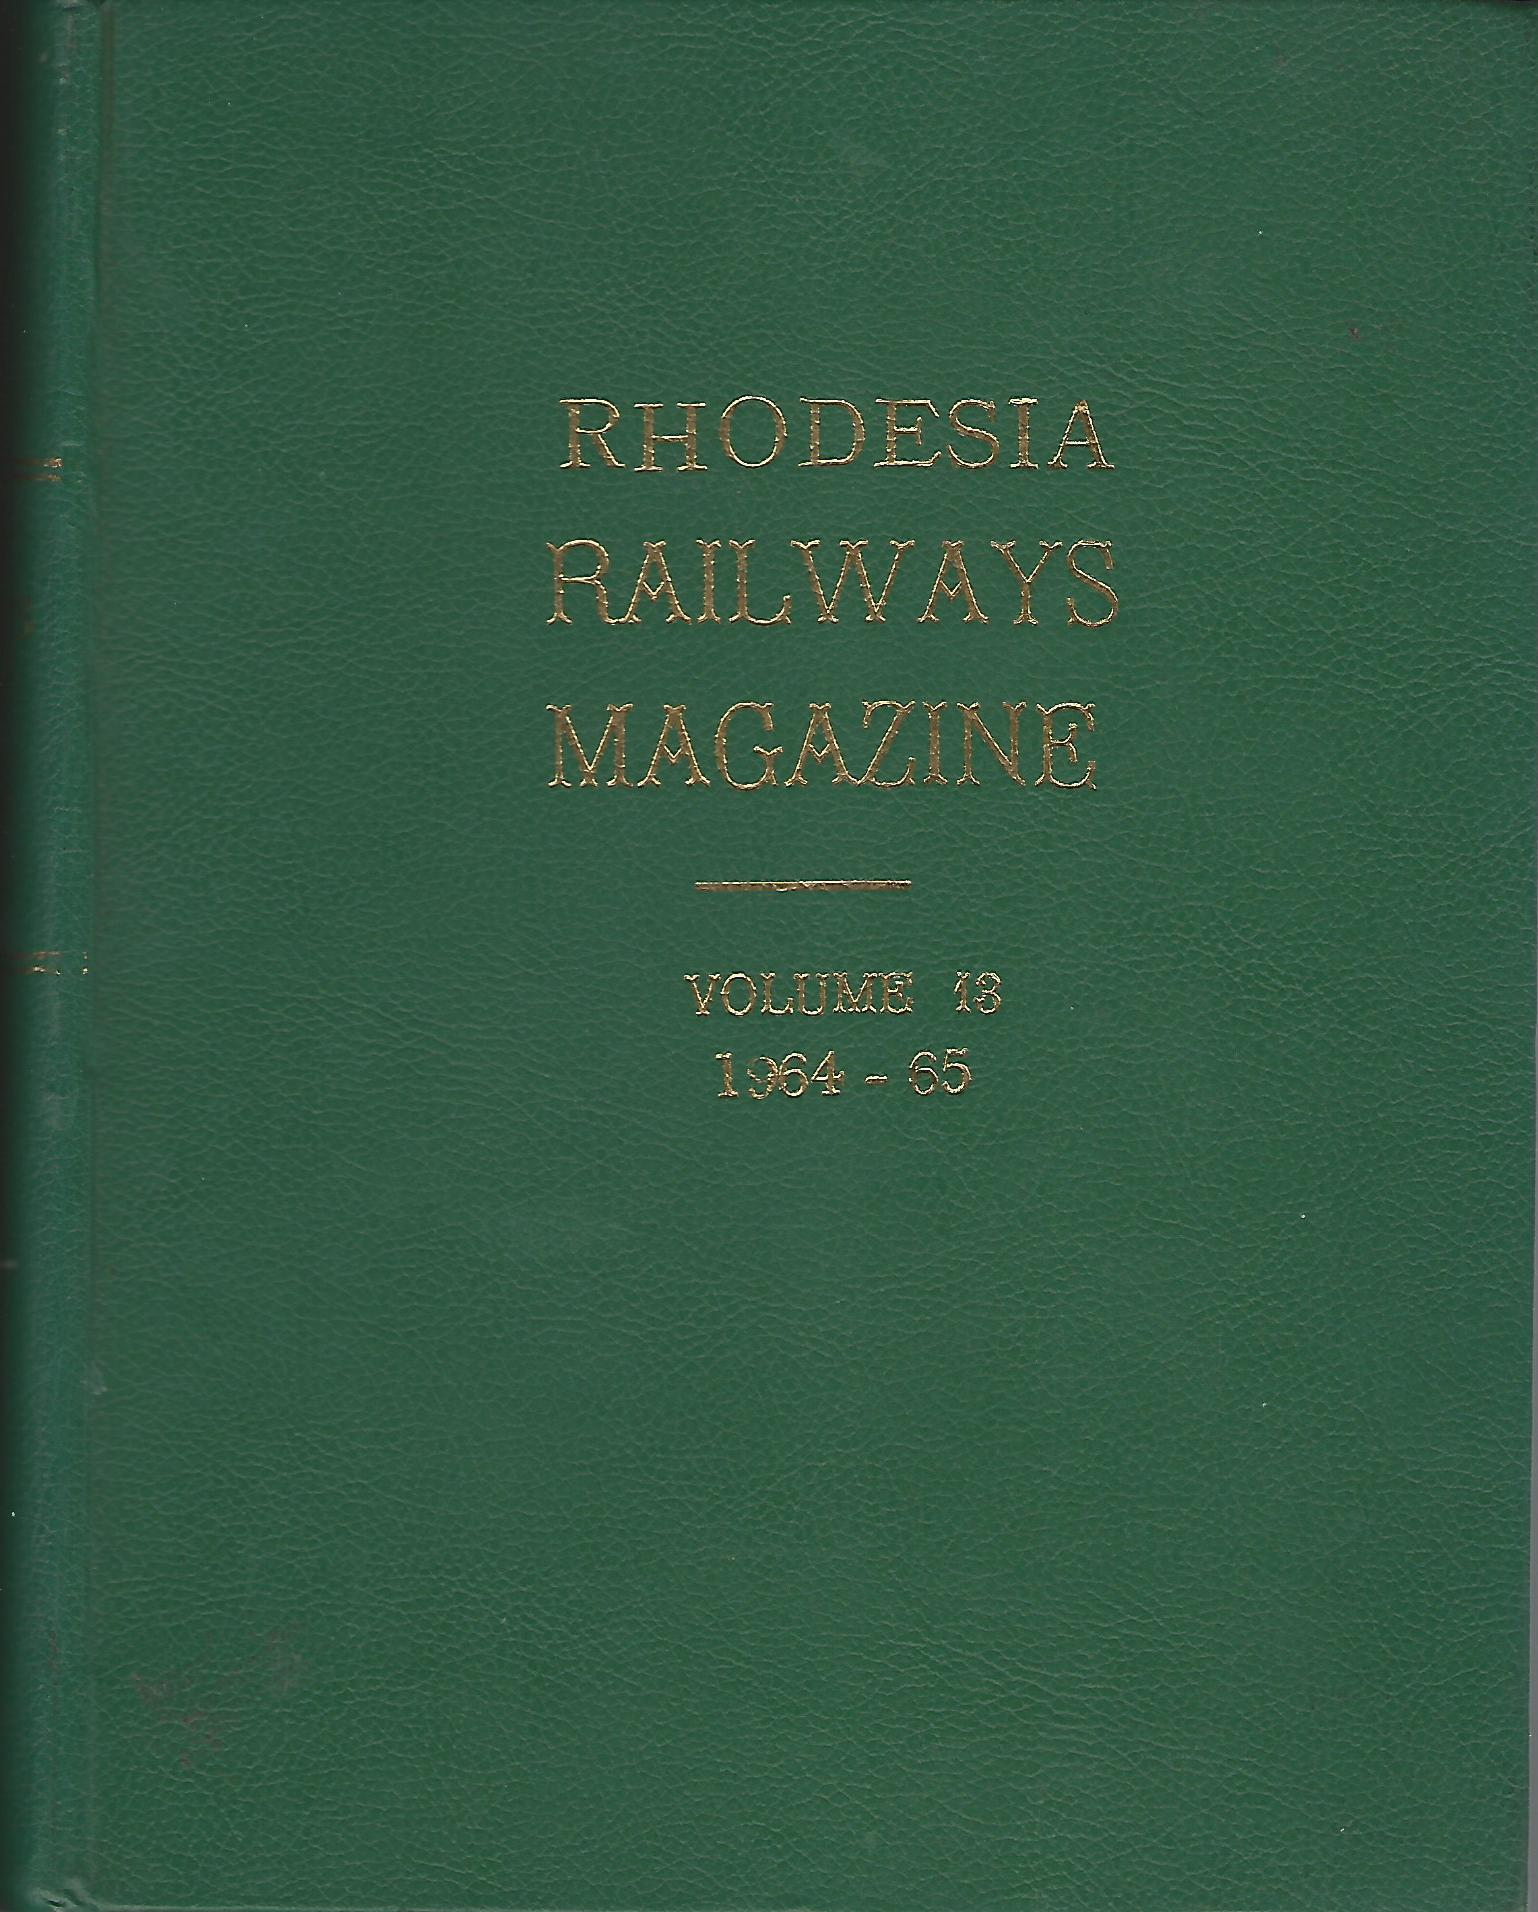 Image for Rhodesia Railways Magazine Volume 13: 1964-65.